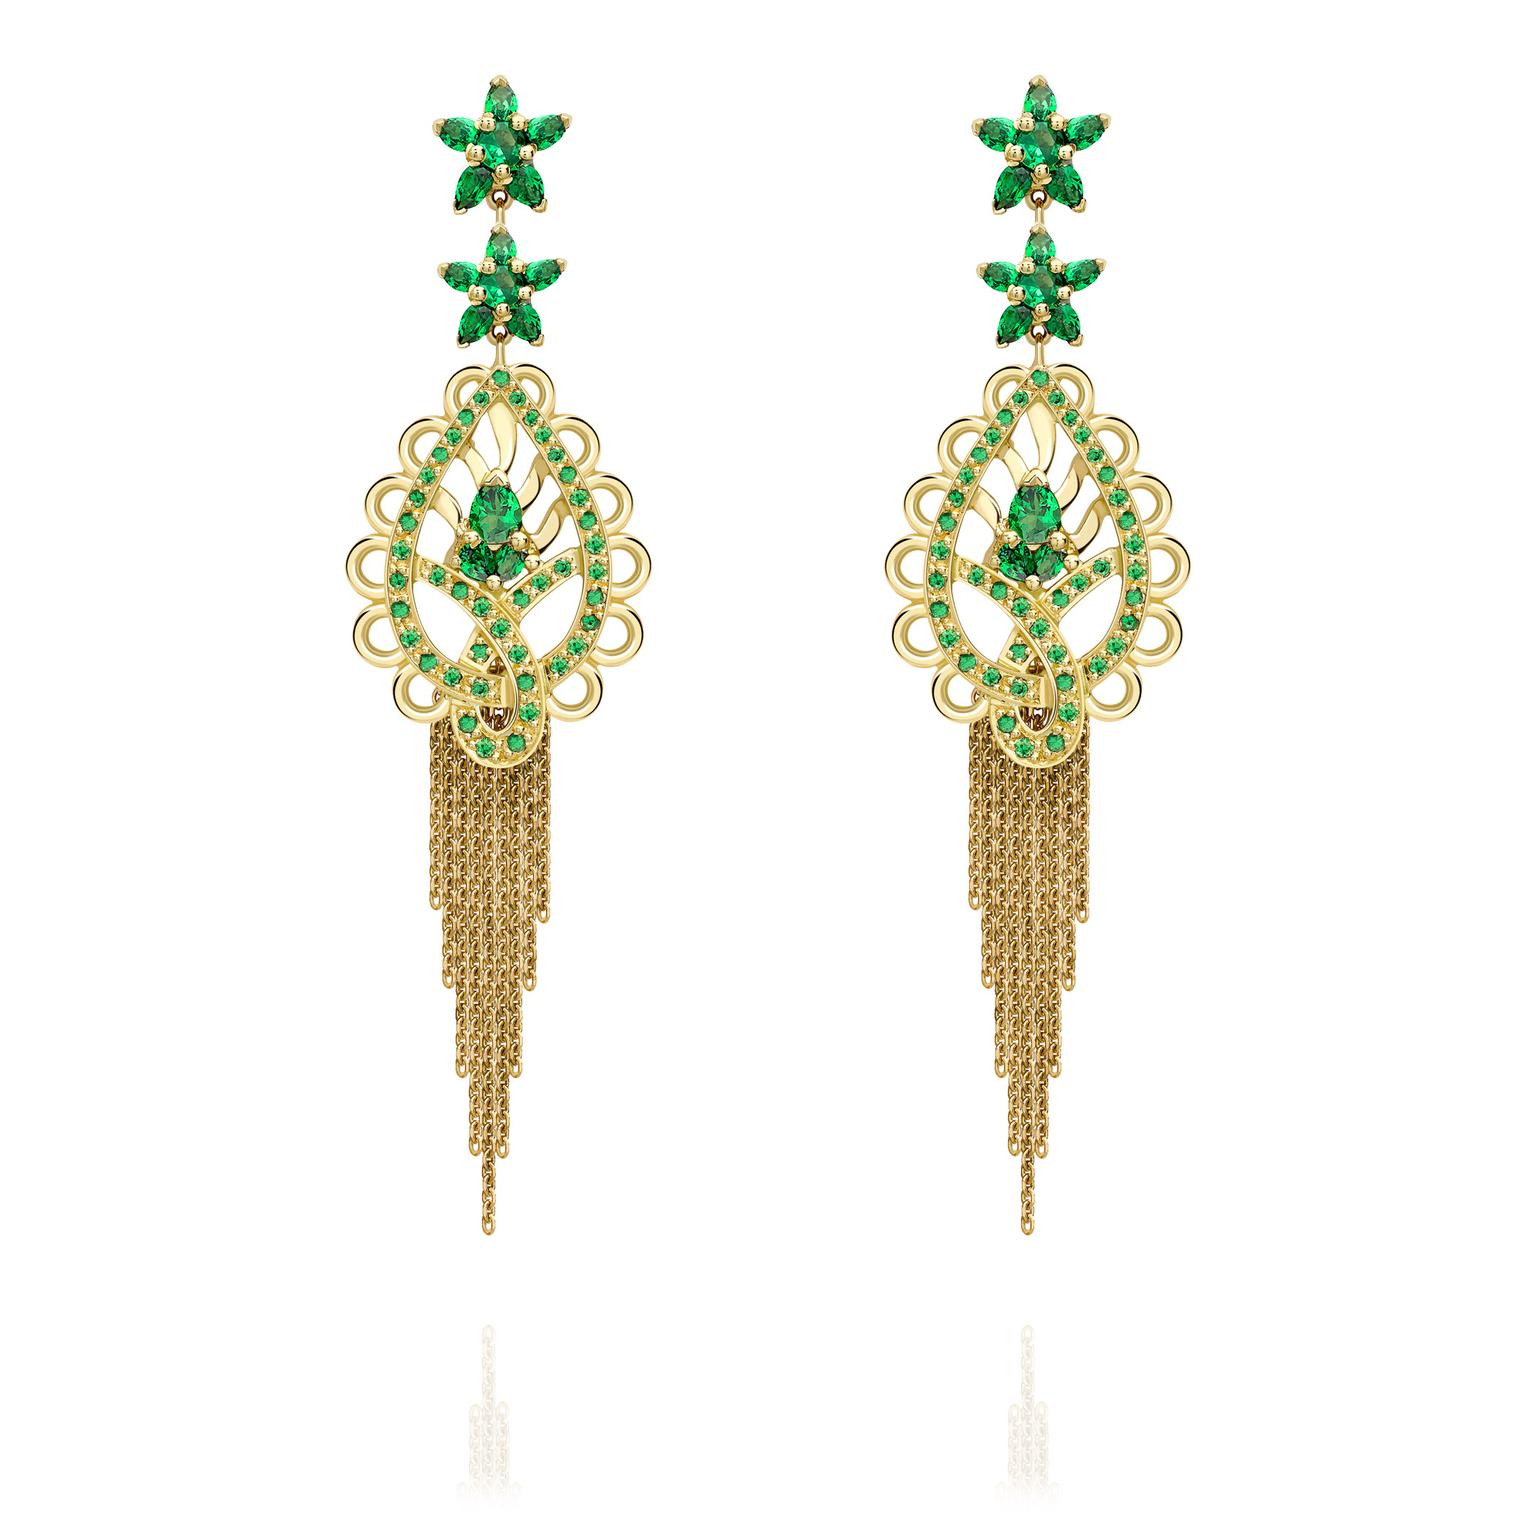 Ana-de-Costa-Paisly-Earrings-zoom